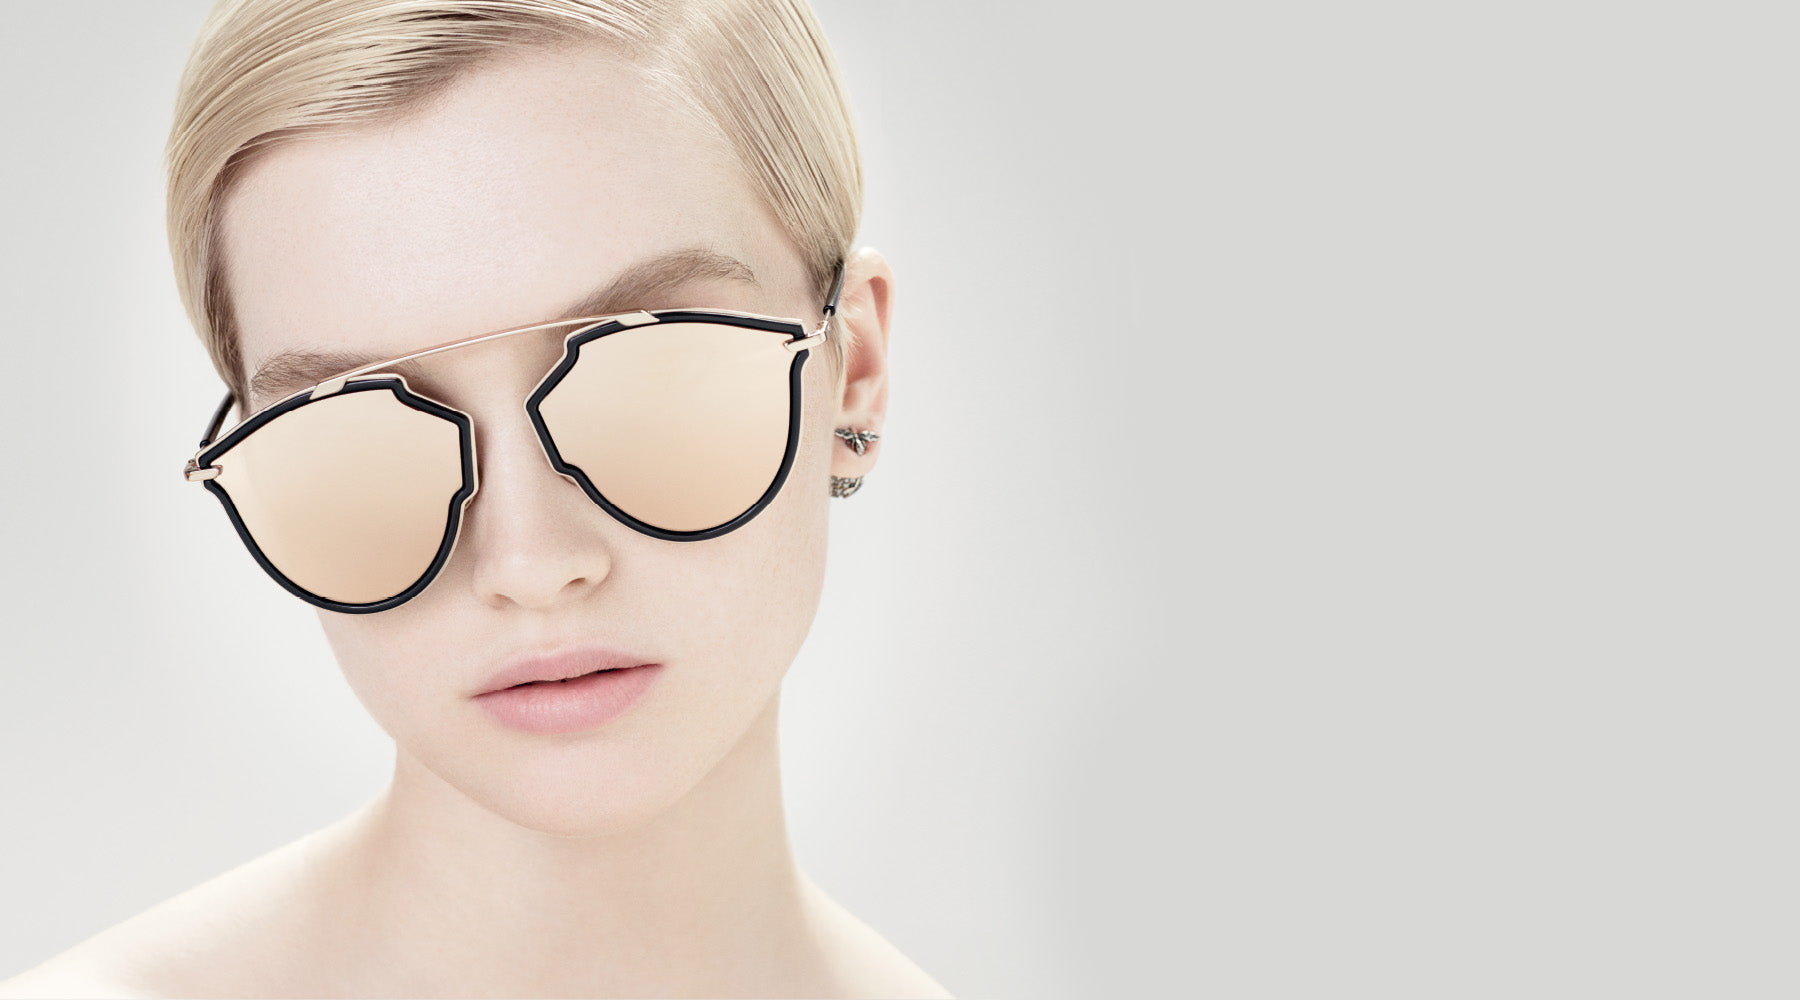 Christian Dior Sunglasses - 2020 Collection